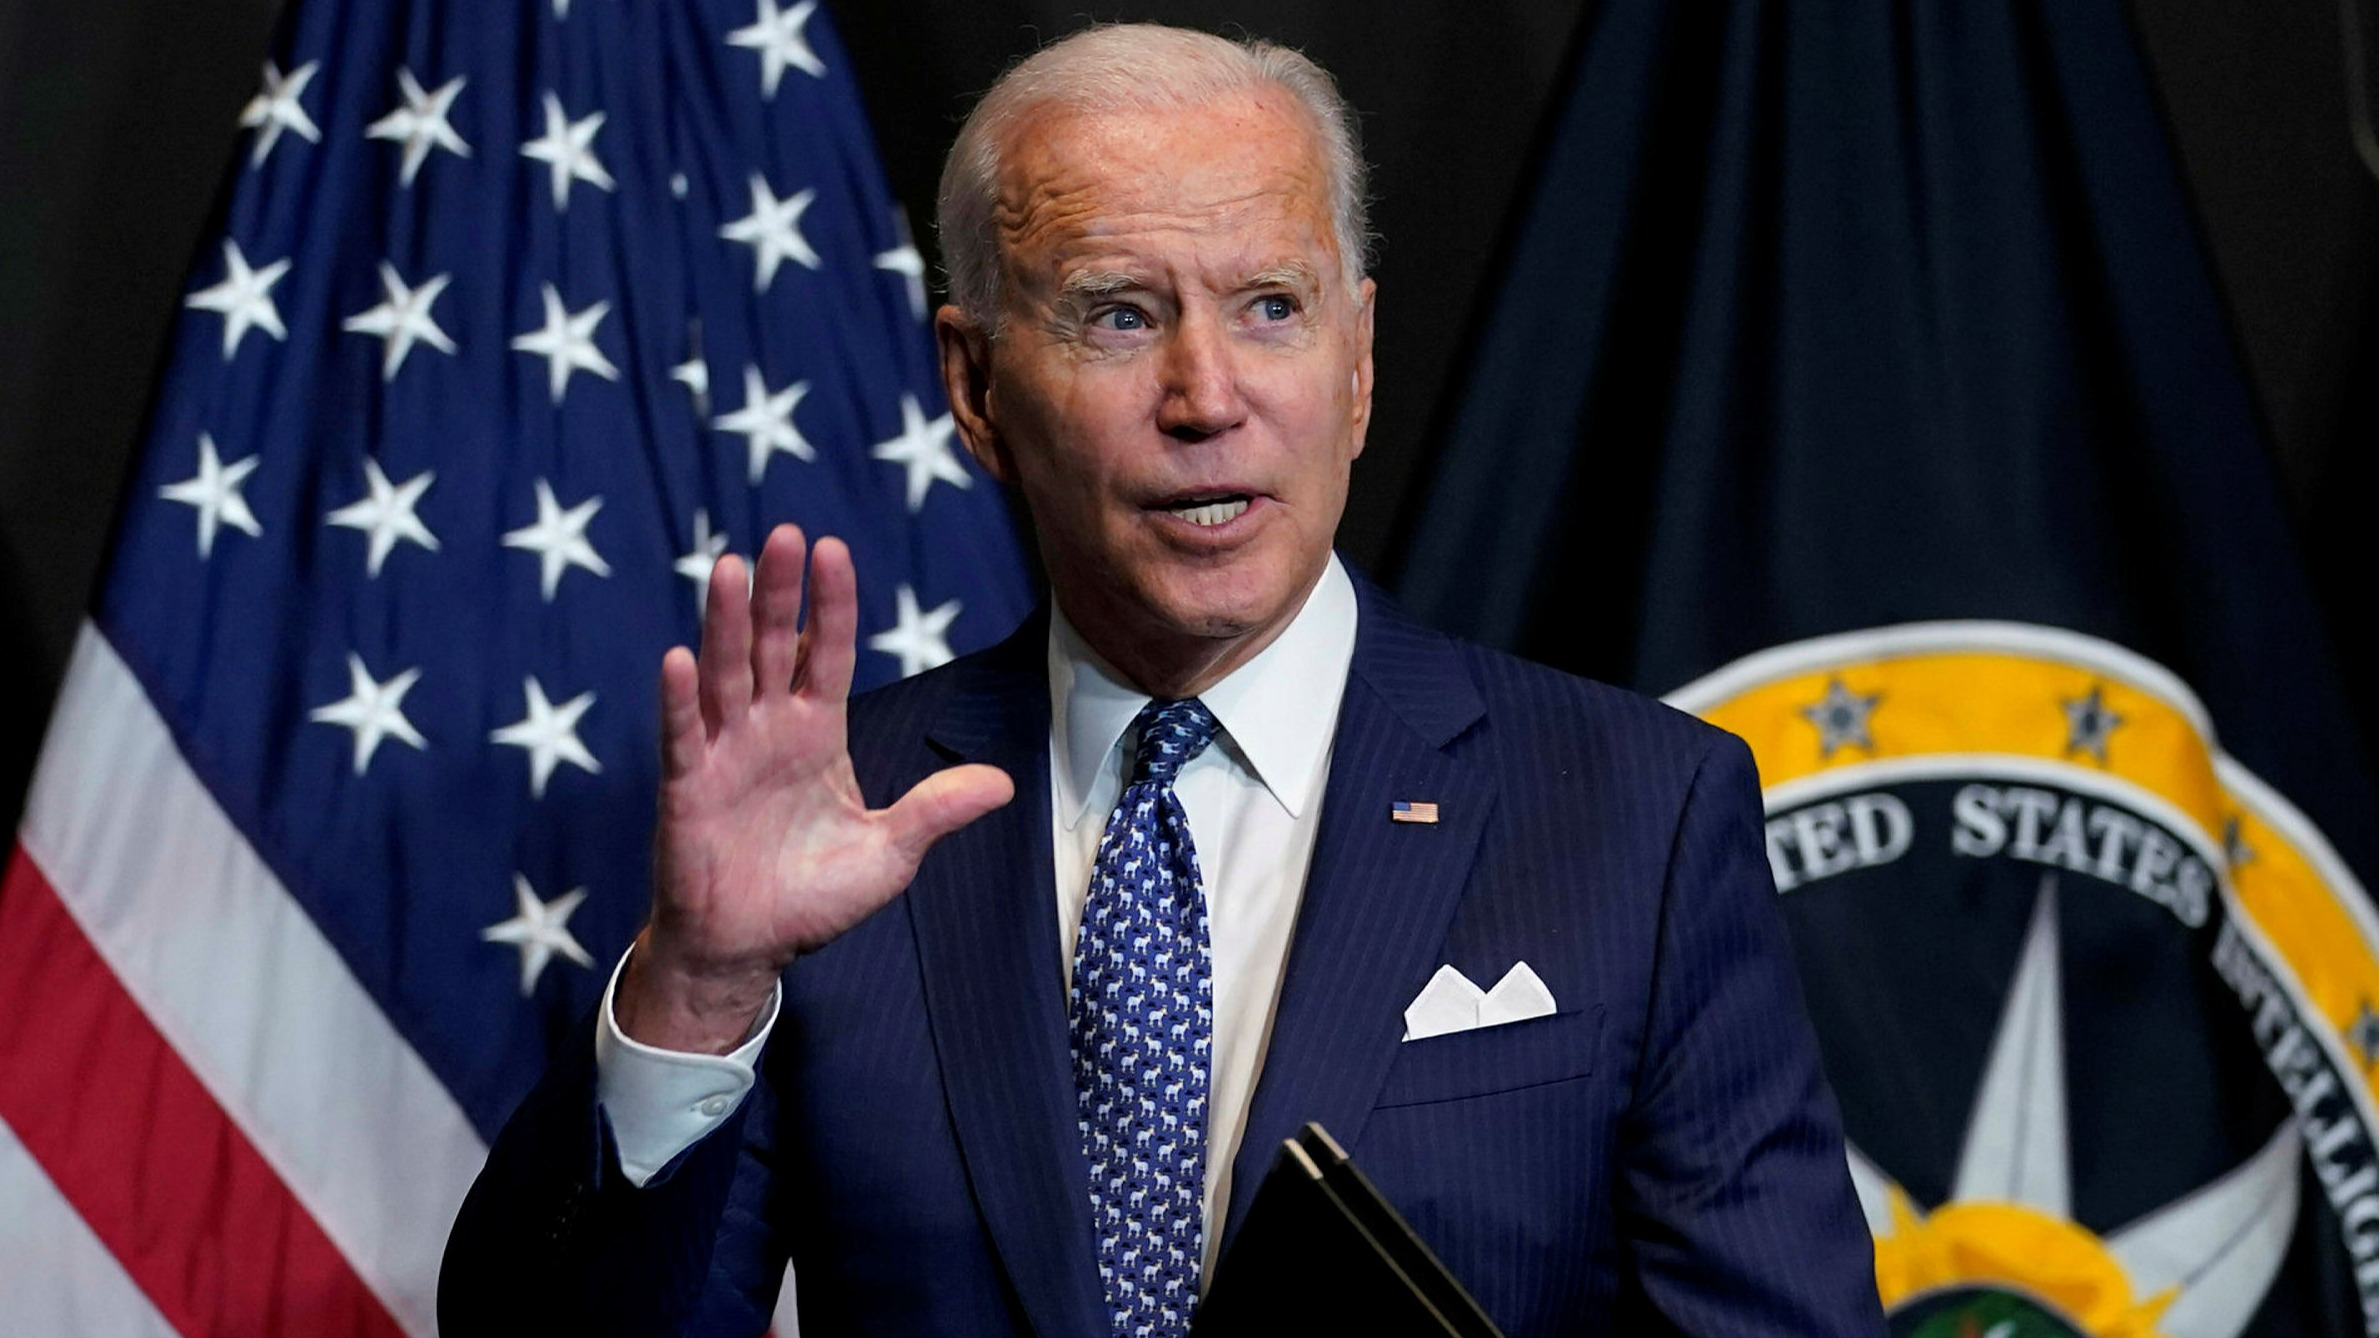 Why Joe Biden is such an elusive target for his critics | Financial Times